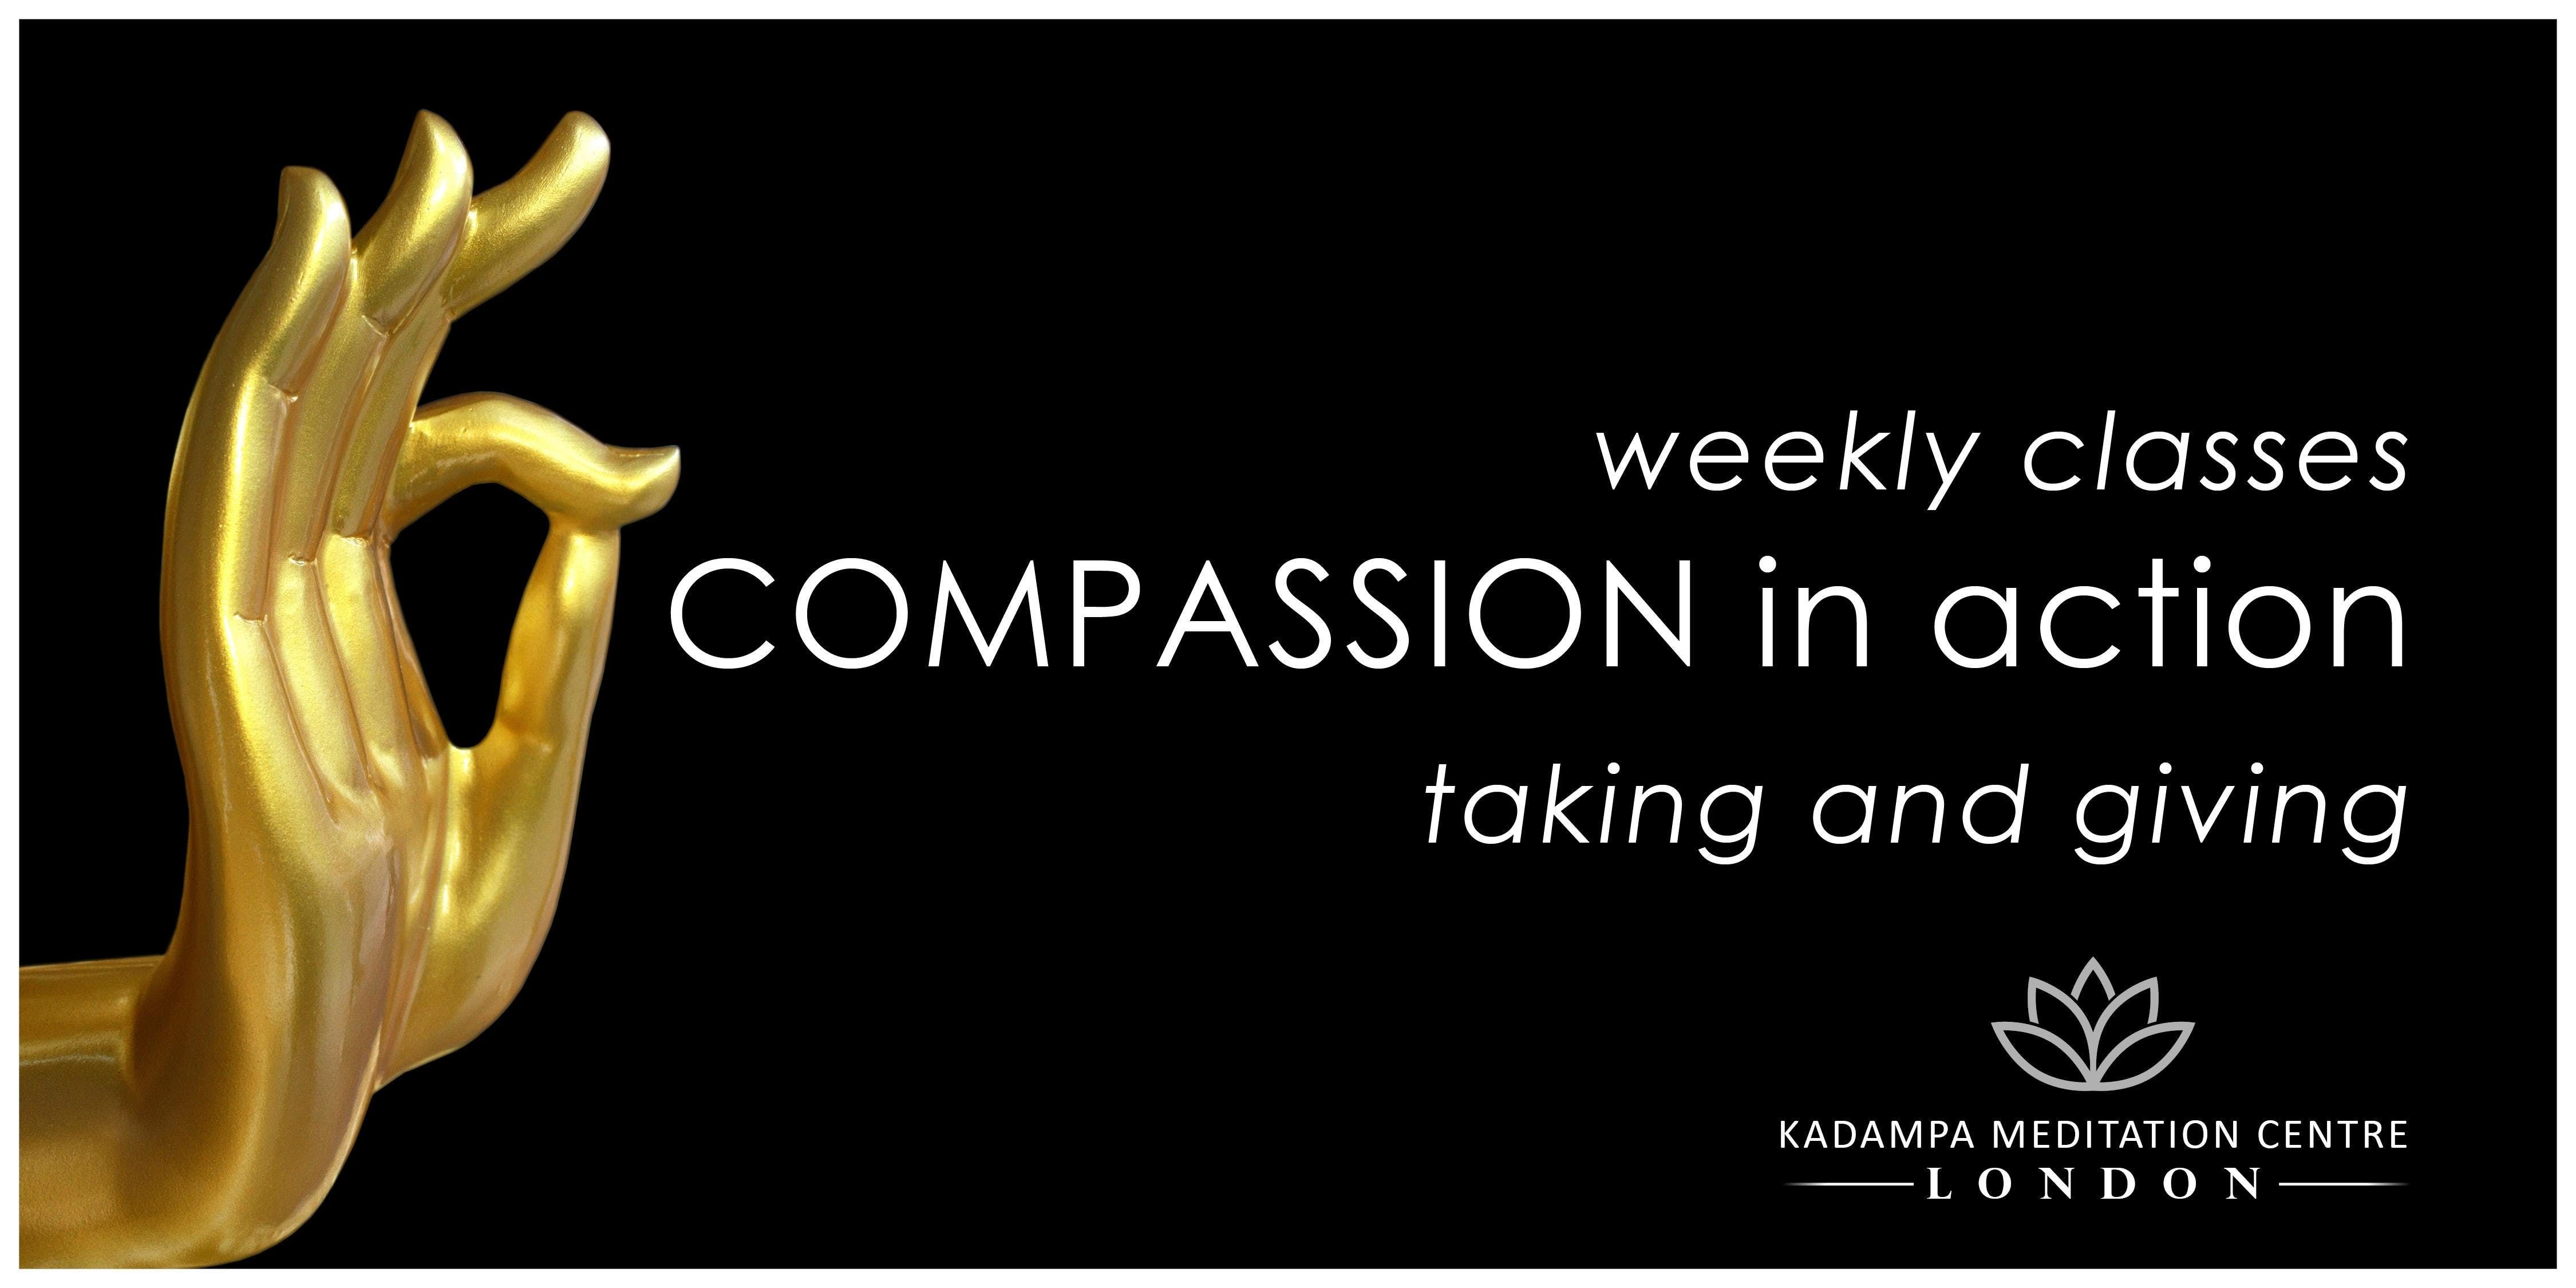 Compassion in Action The Practice of Taking & Giving (Morden Classes)